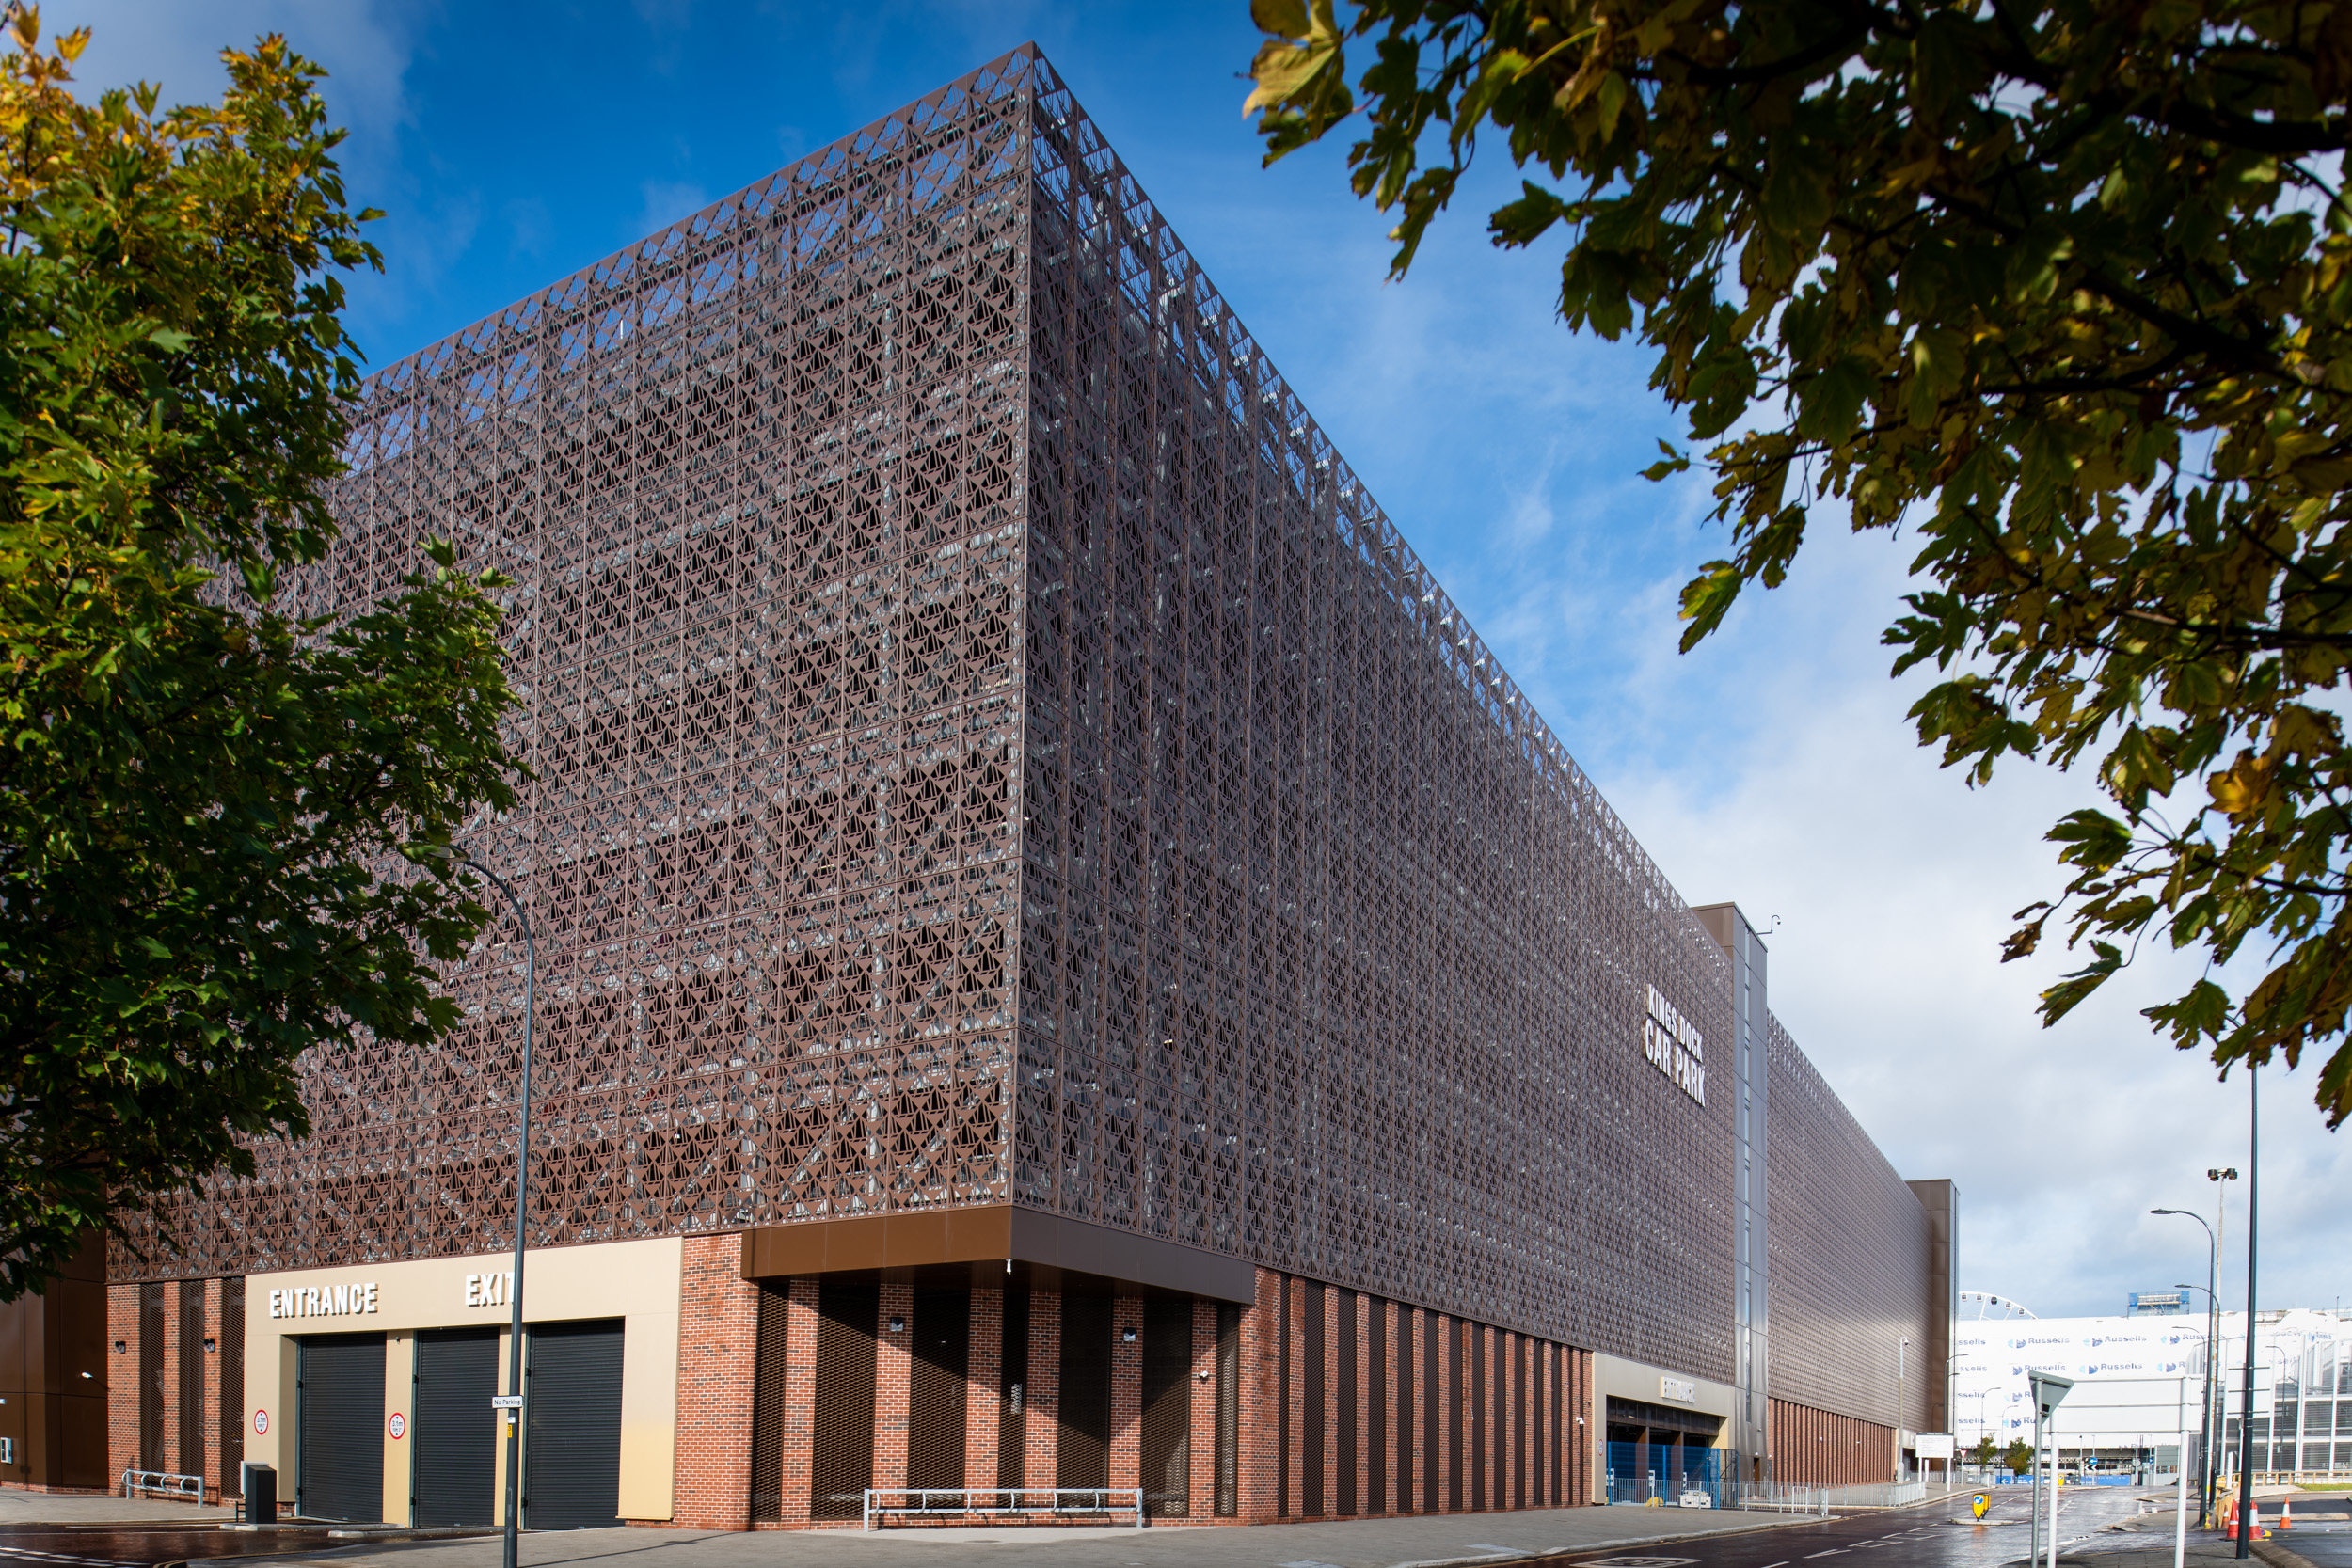 Maple complete architectural façade project at Liverpool's Kings Dock car park